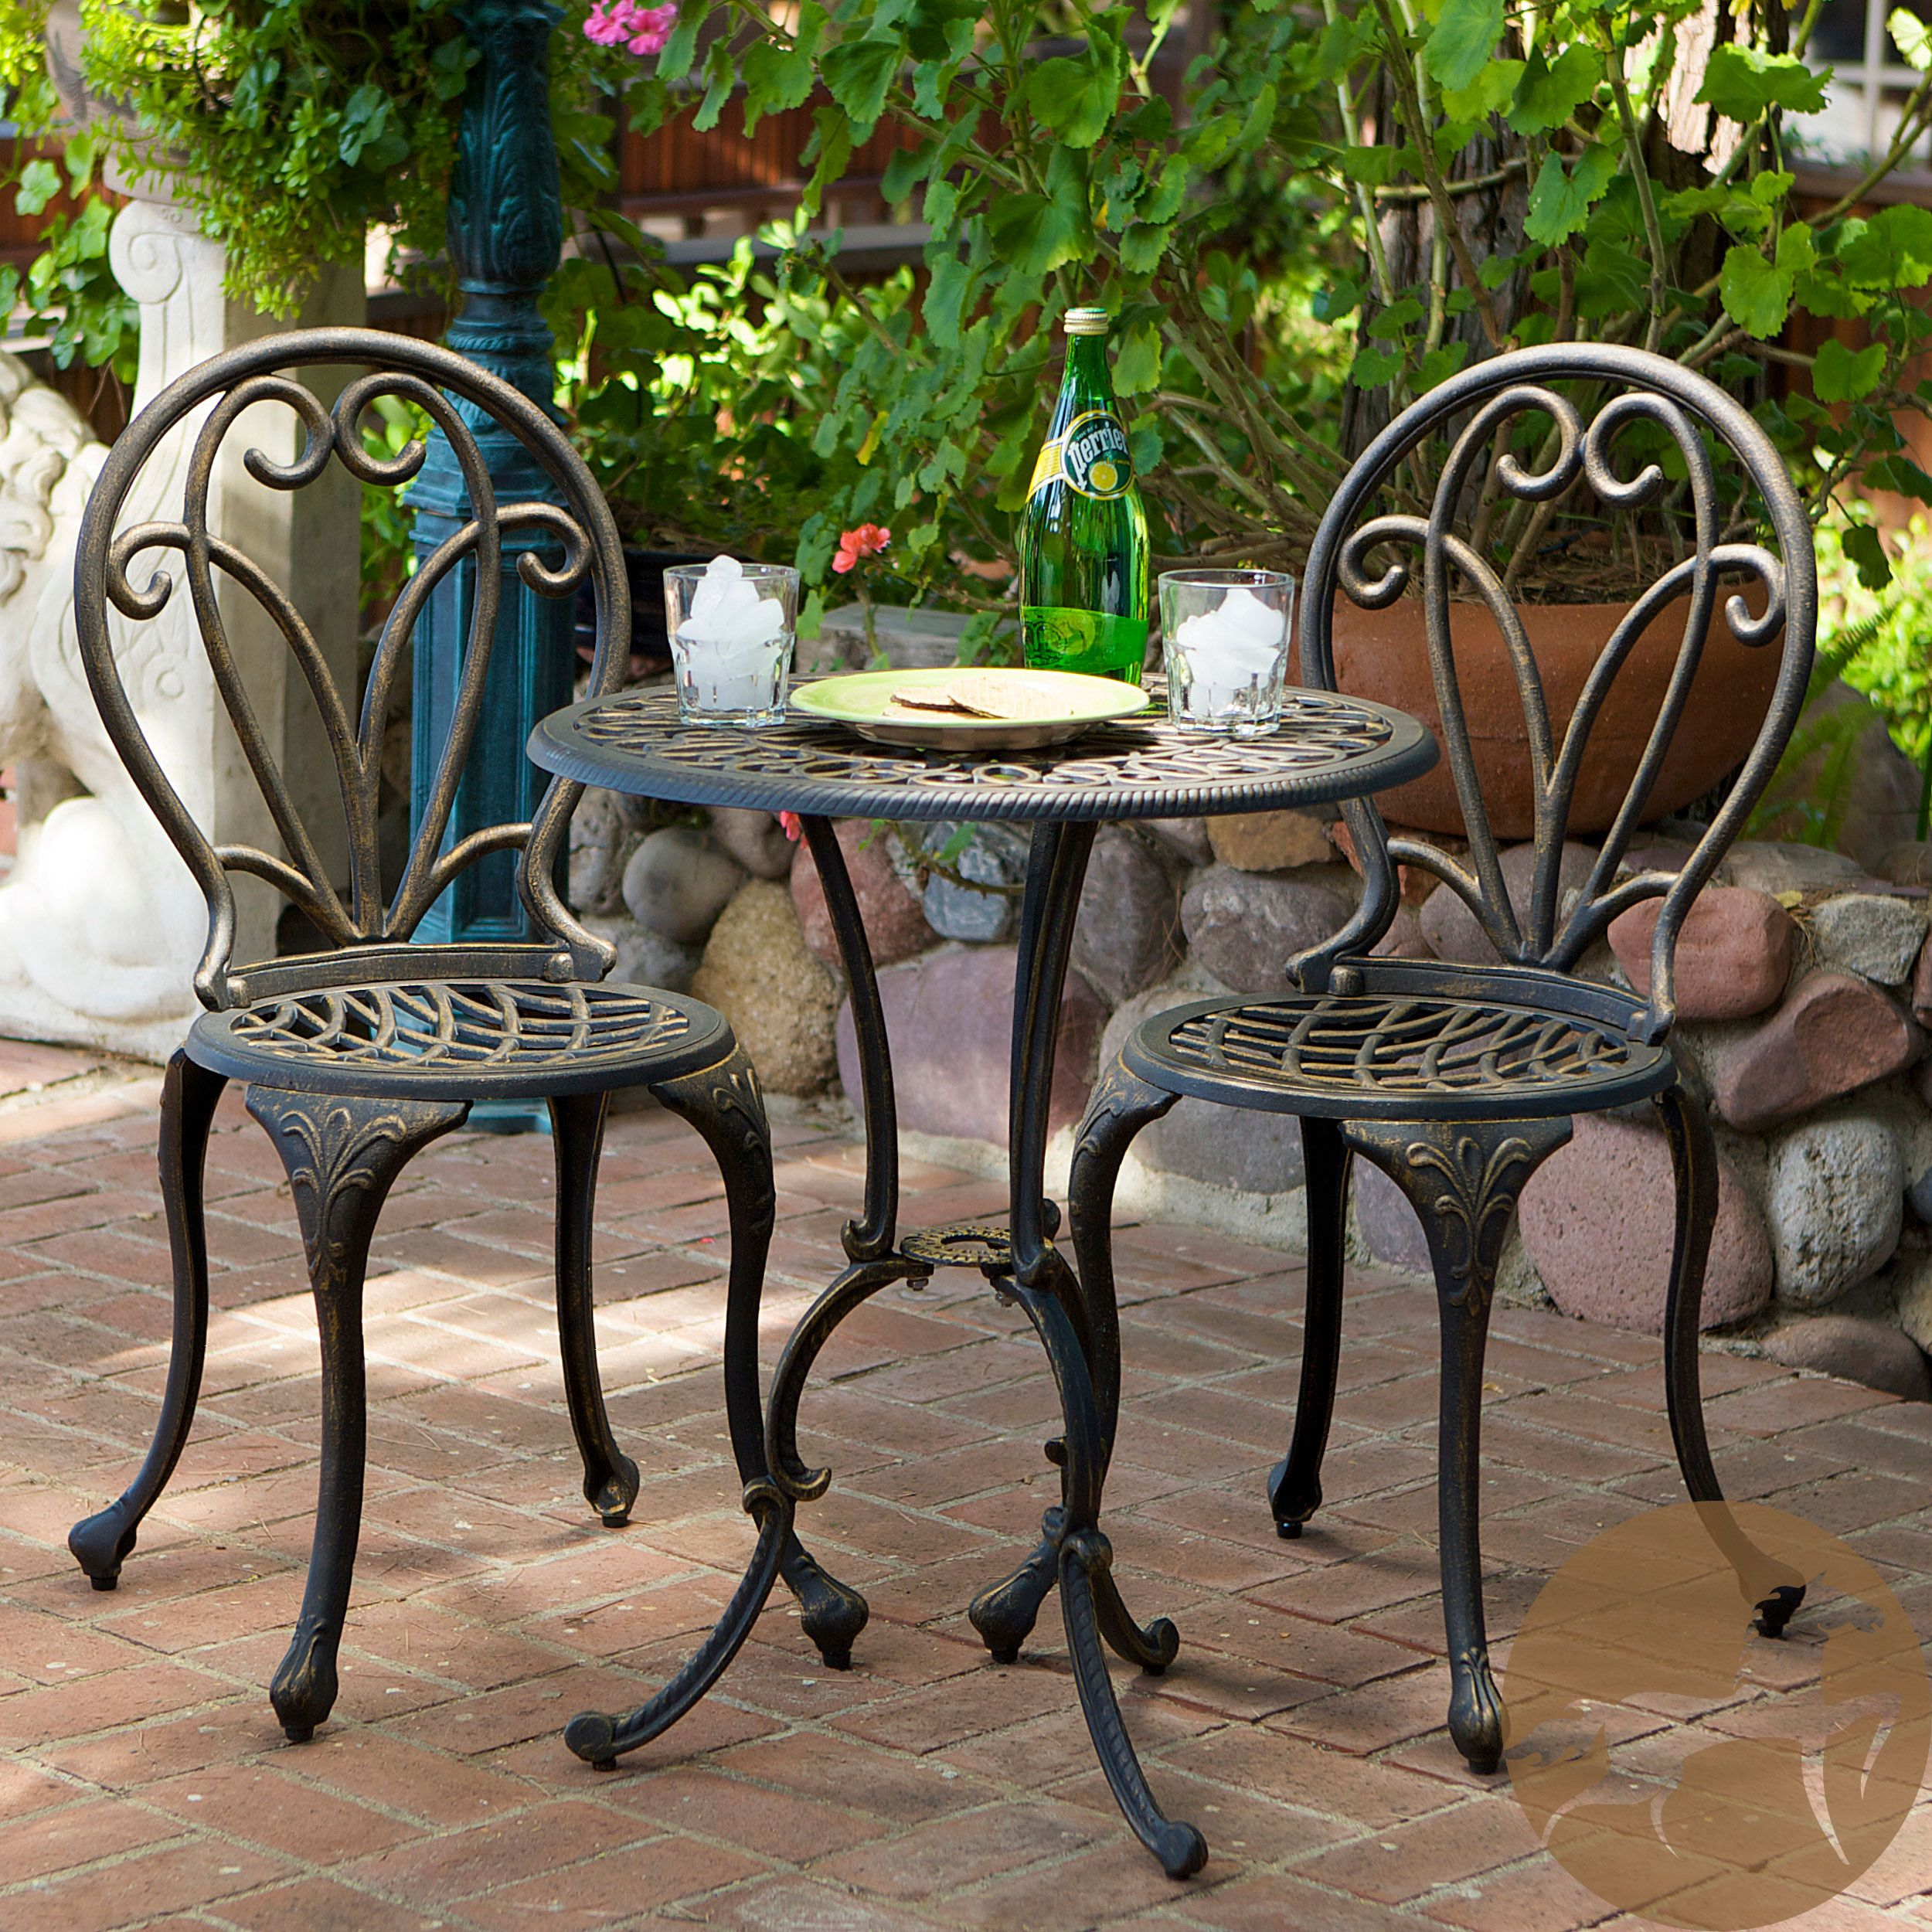 This French style outdoor bistro set will lend classy style to your patio Th